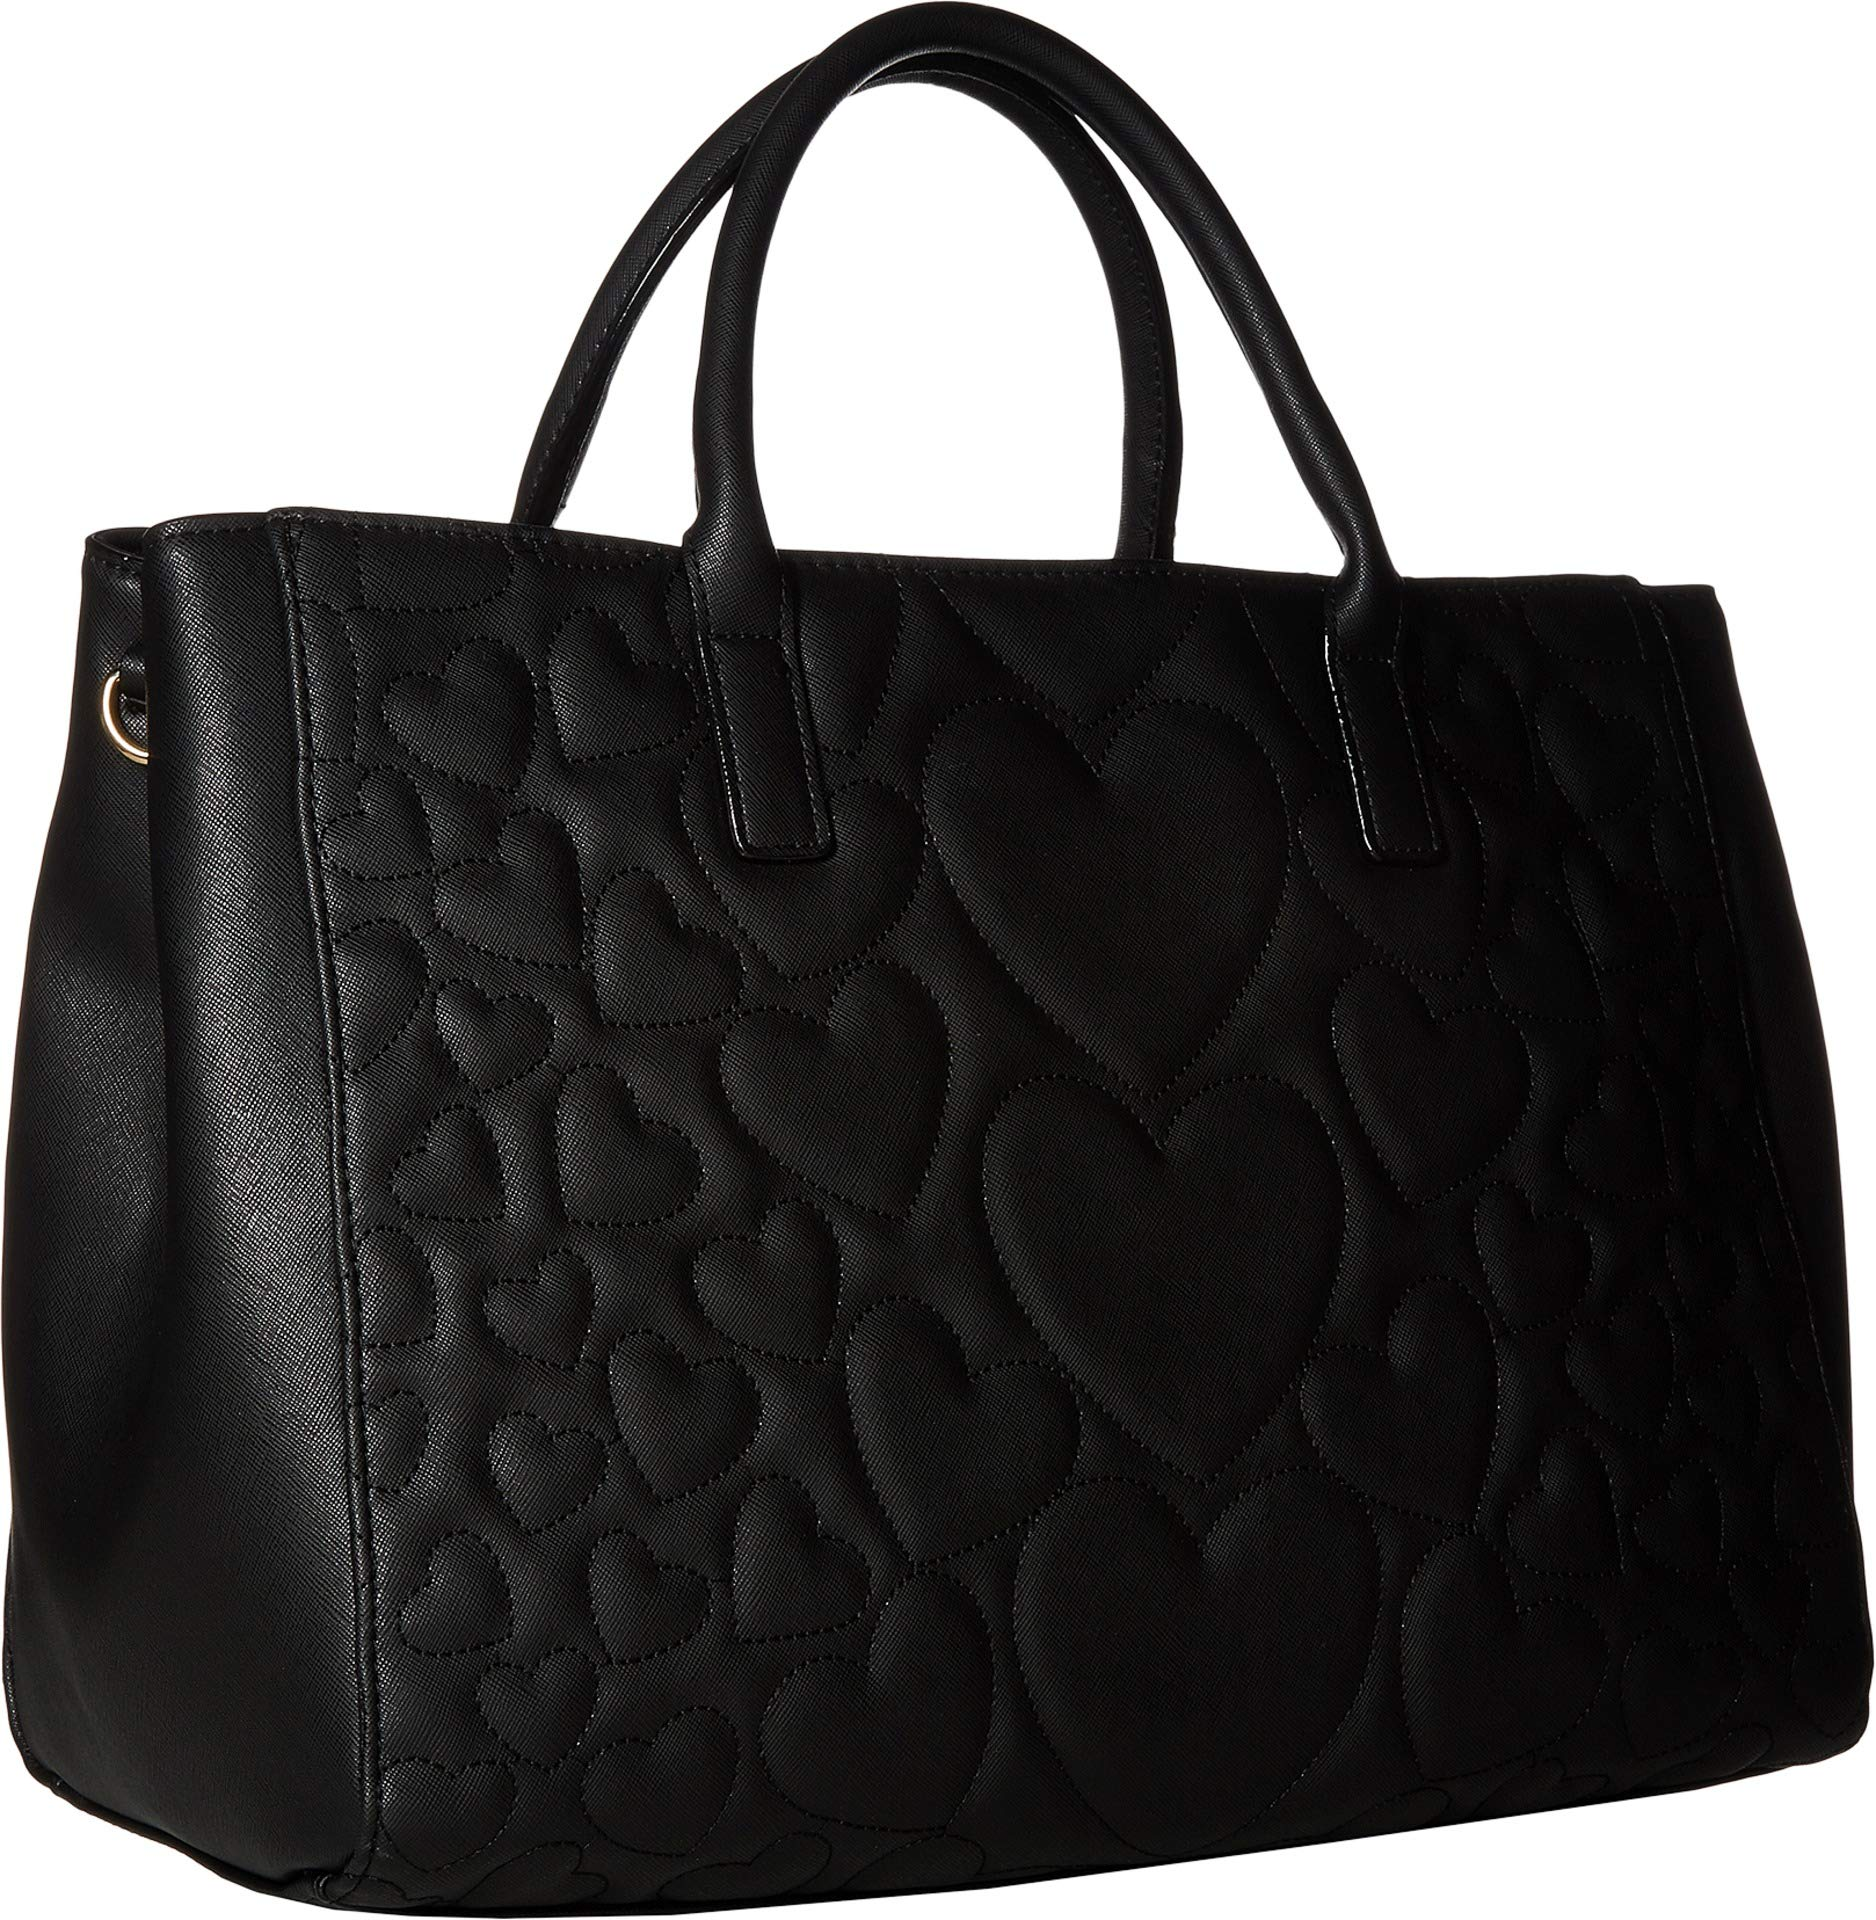 Betsey Johnson Women's Structured Quilt Satchel Black One Size by Betsey Johnson (Image #2)